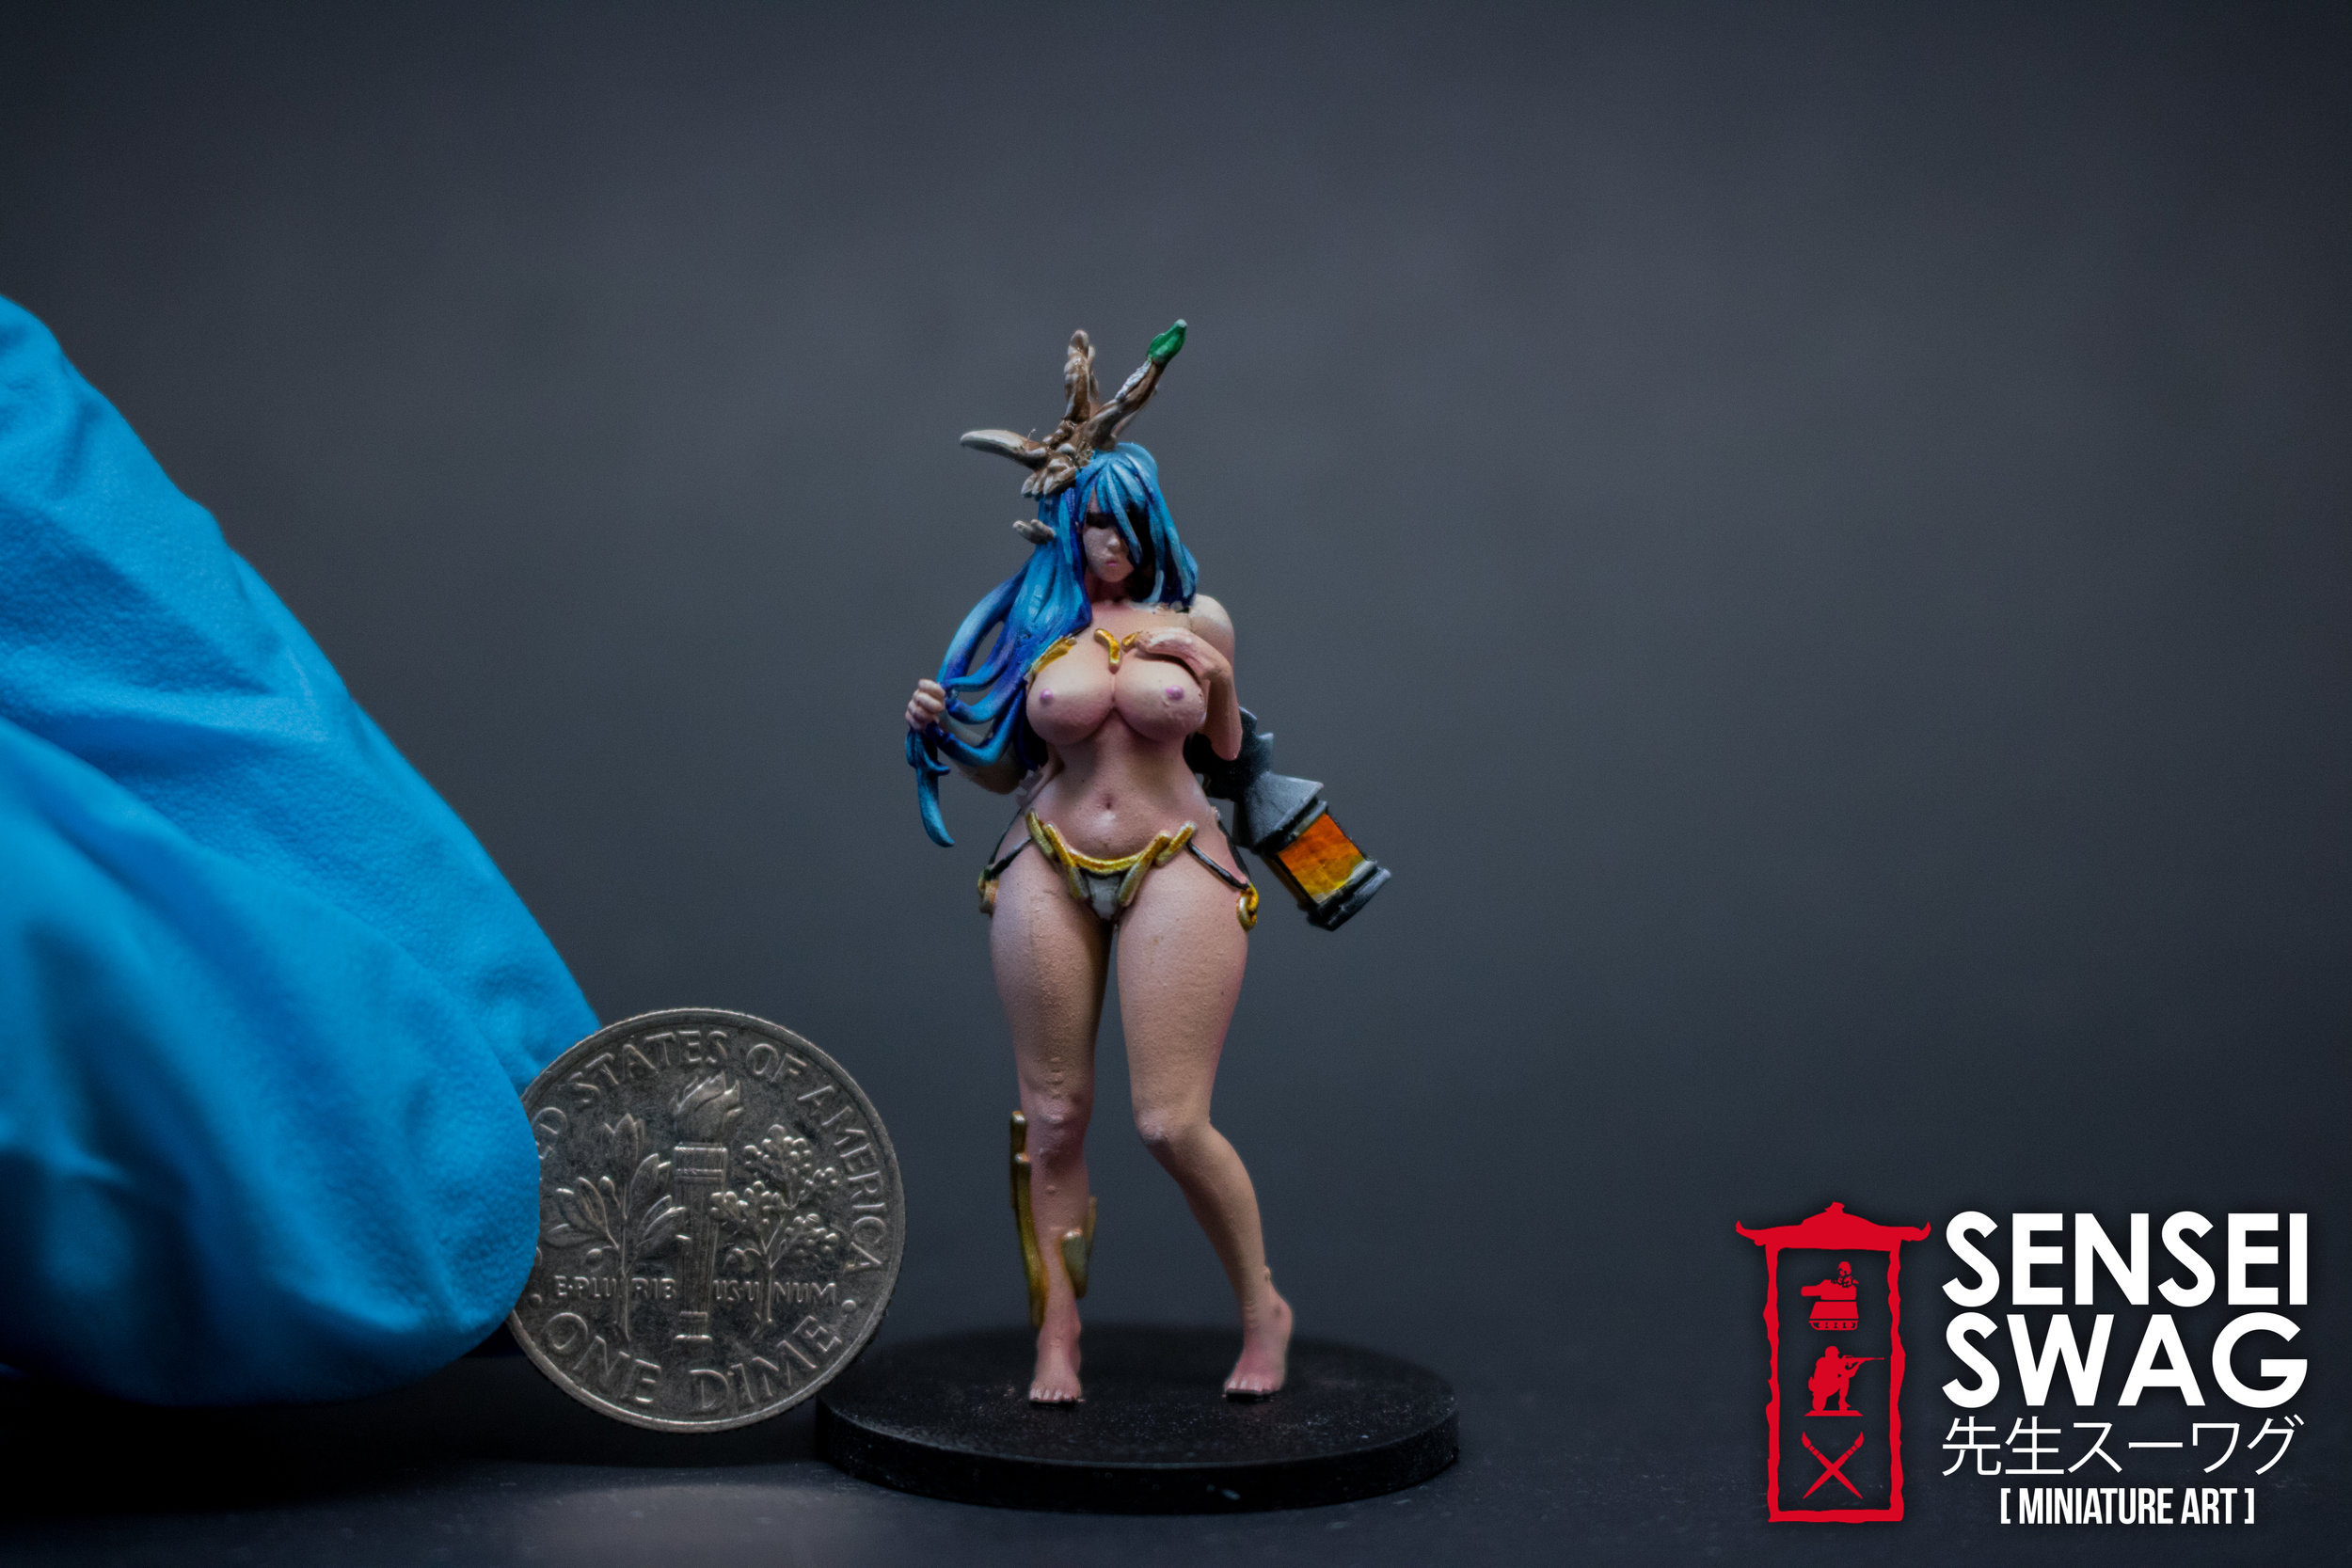 Kingdom Death Lonely Tree Lonely Muse Sensei Swag Painted Pinup Illuminated Lady-2.jpg